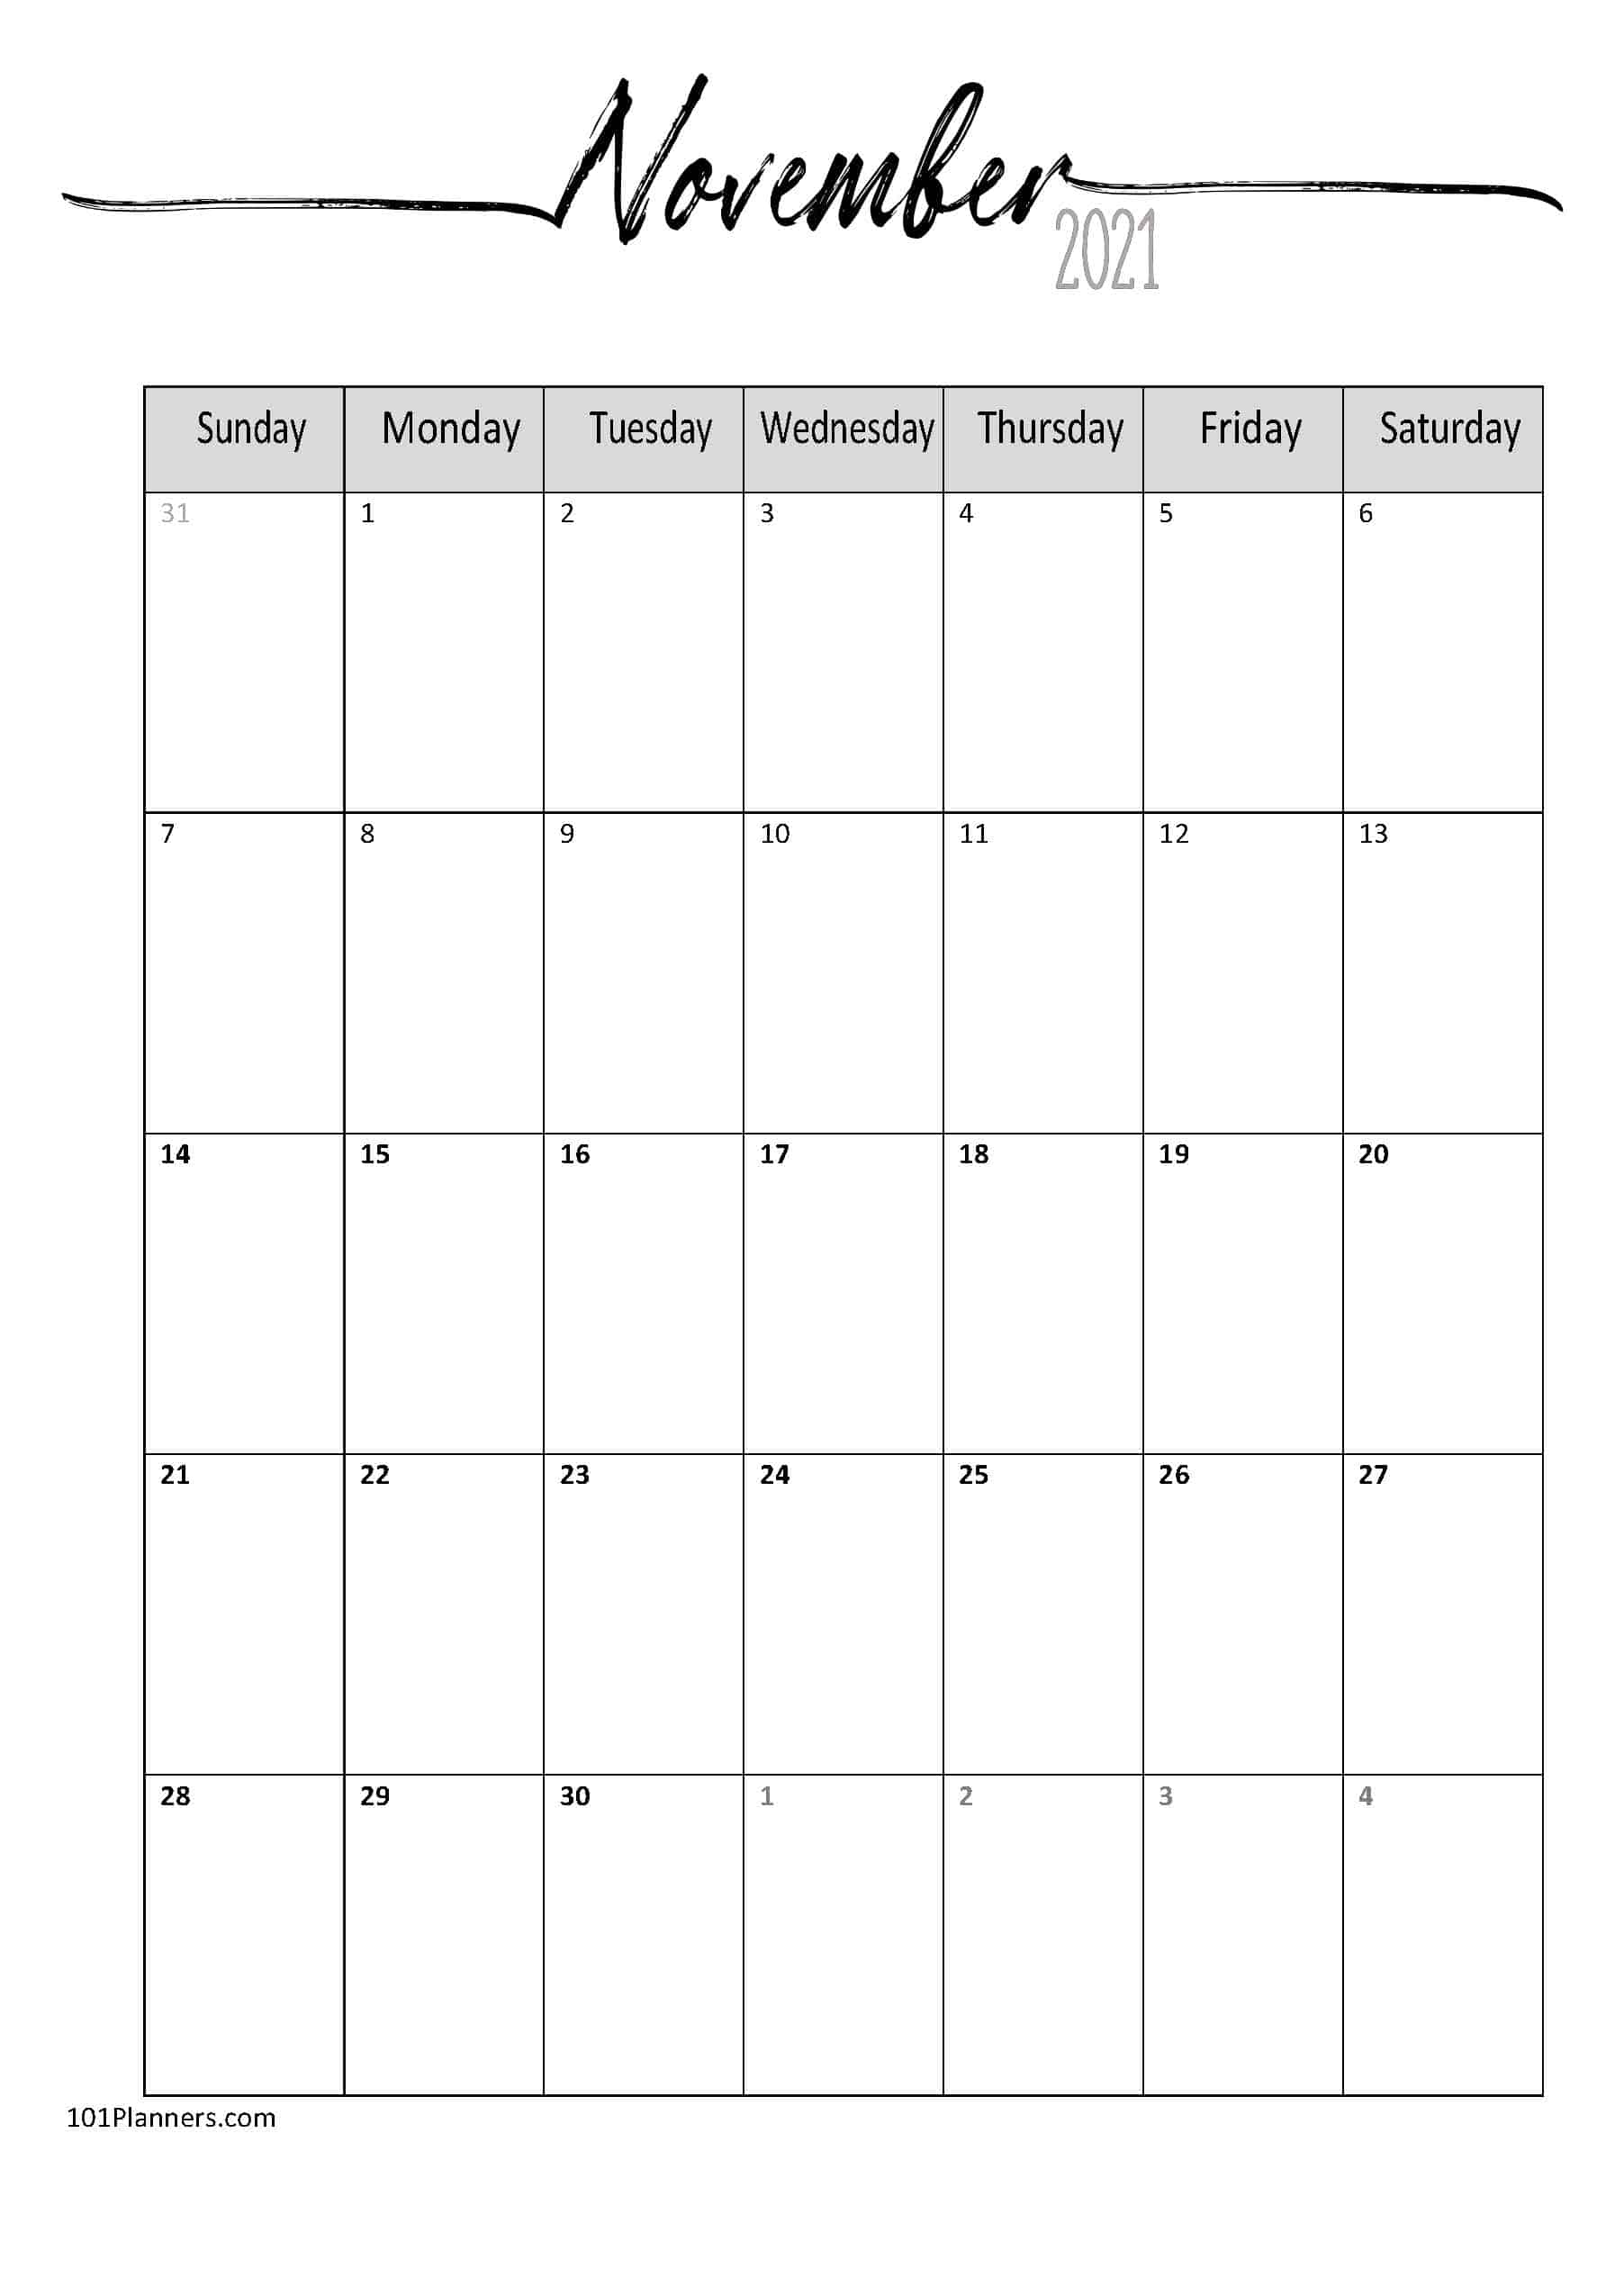 FREE 2021 Calendar Template Word | Instant Download